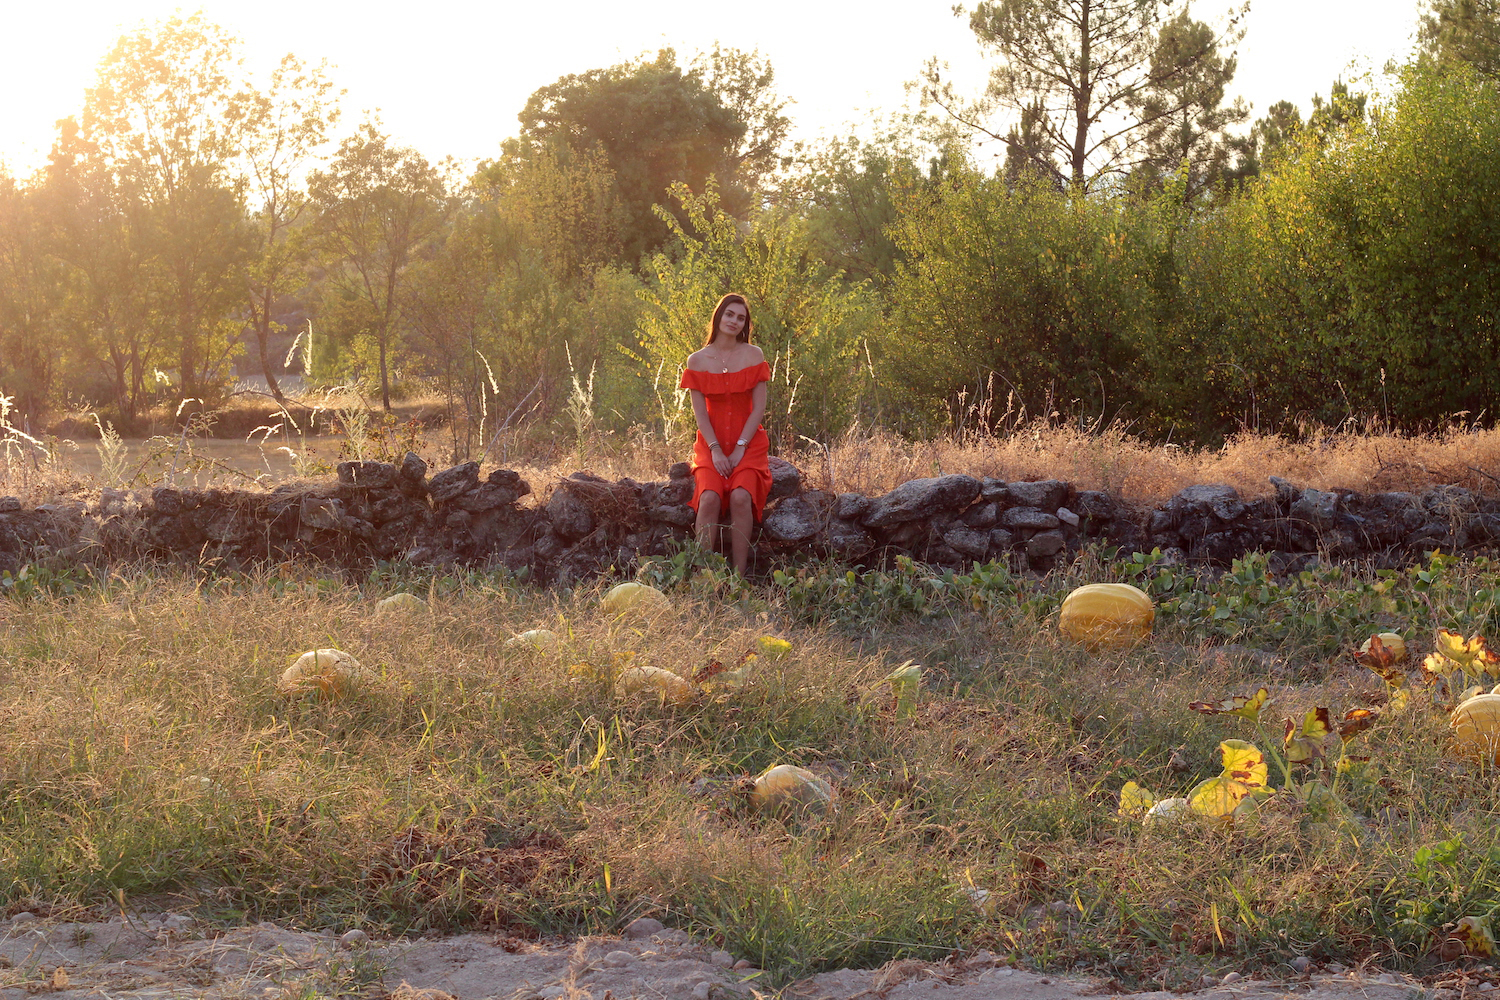 countryside pumpkin patch portugal summer